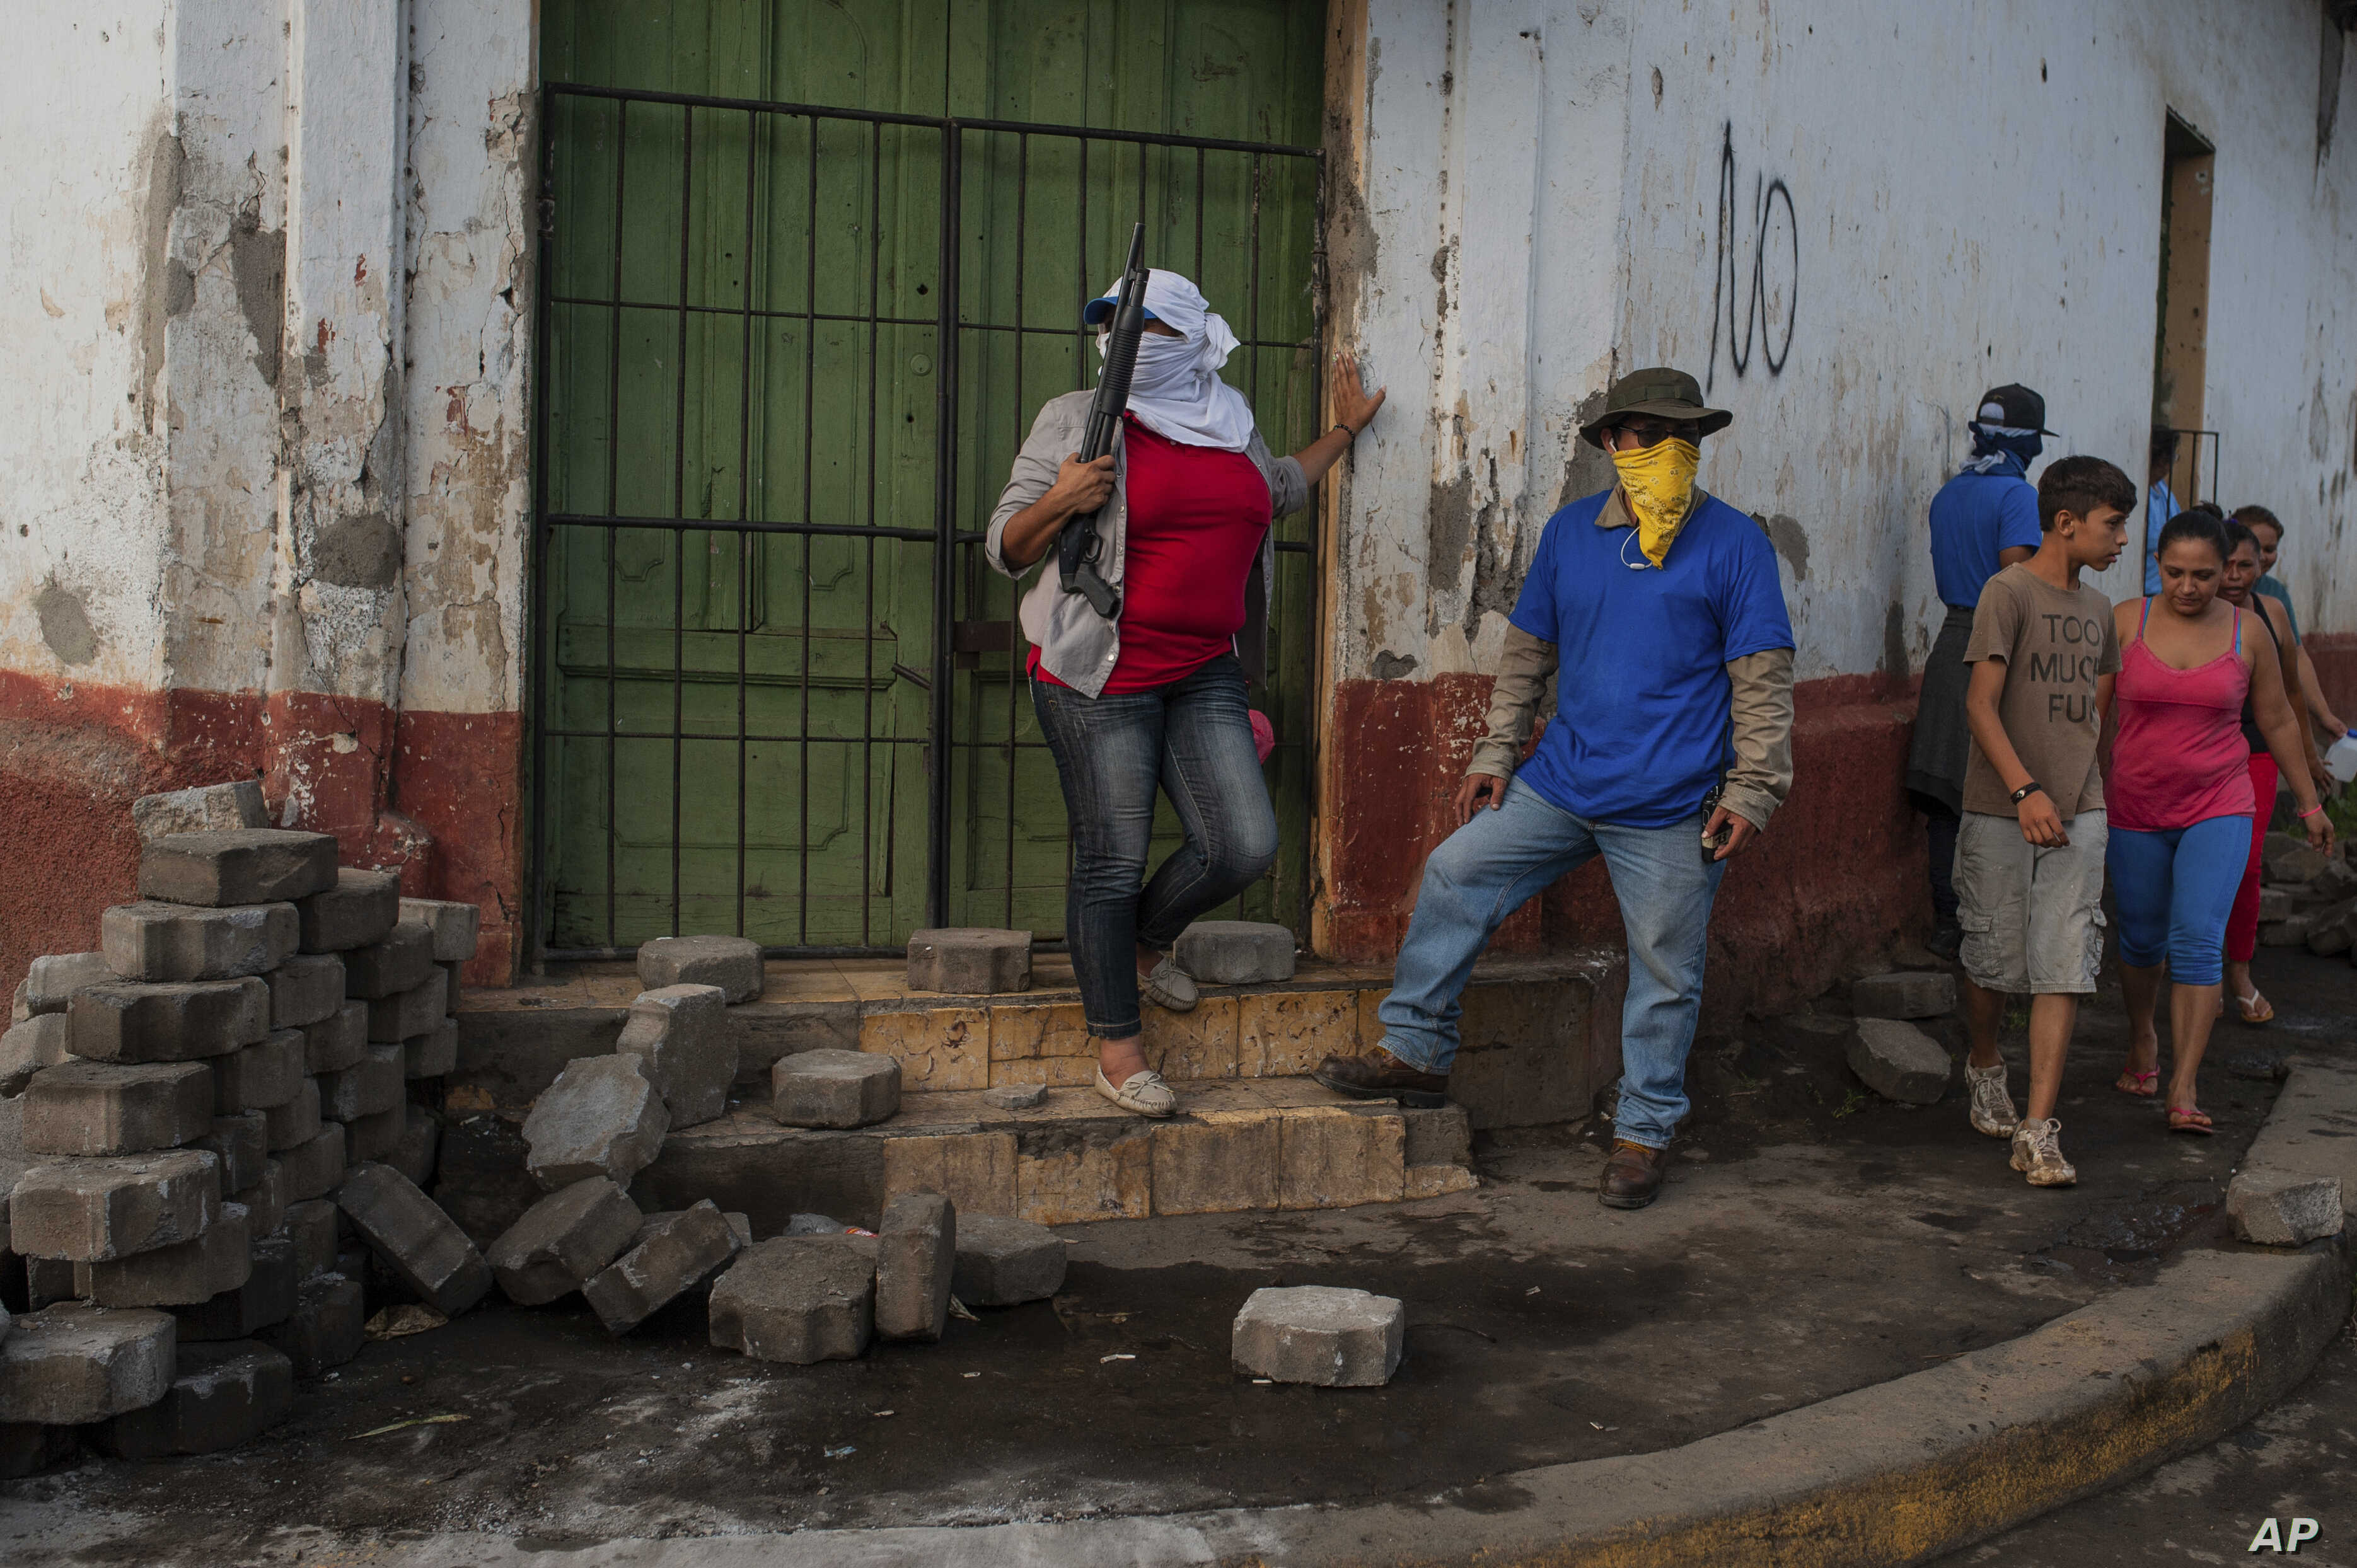 Sandinista militias stand guard at a torn down barricade after police and pro-government militias stormed the Monimbo neighborhood of Masaya, Nicaragua, Tuesday, July 17, 2018.